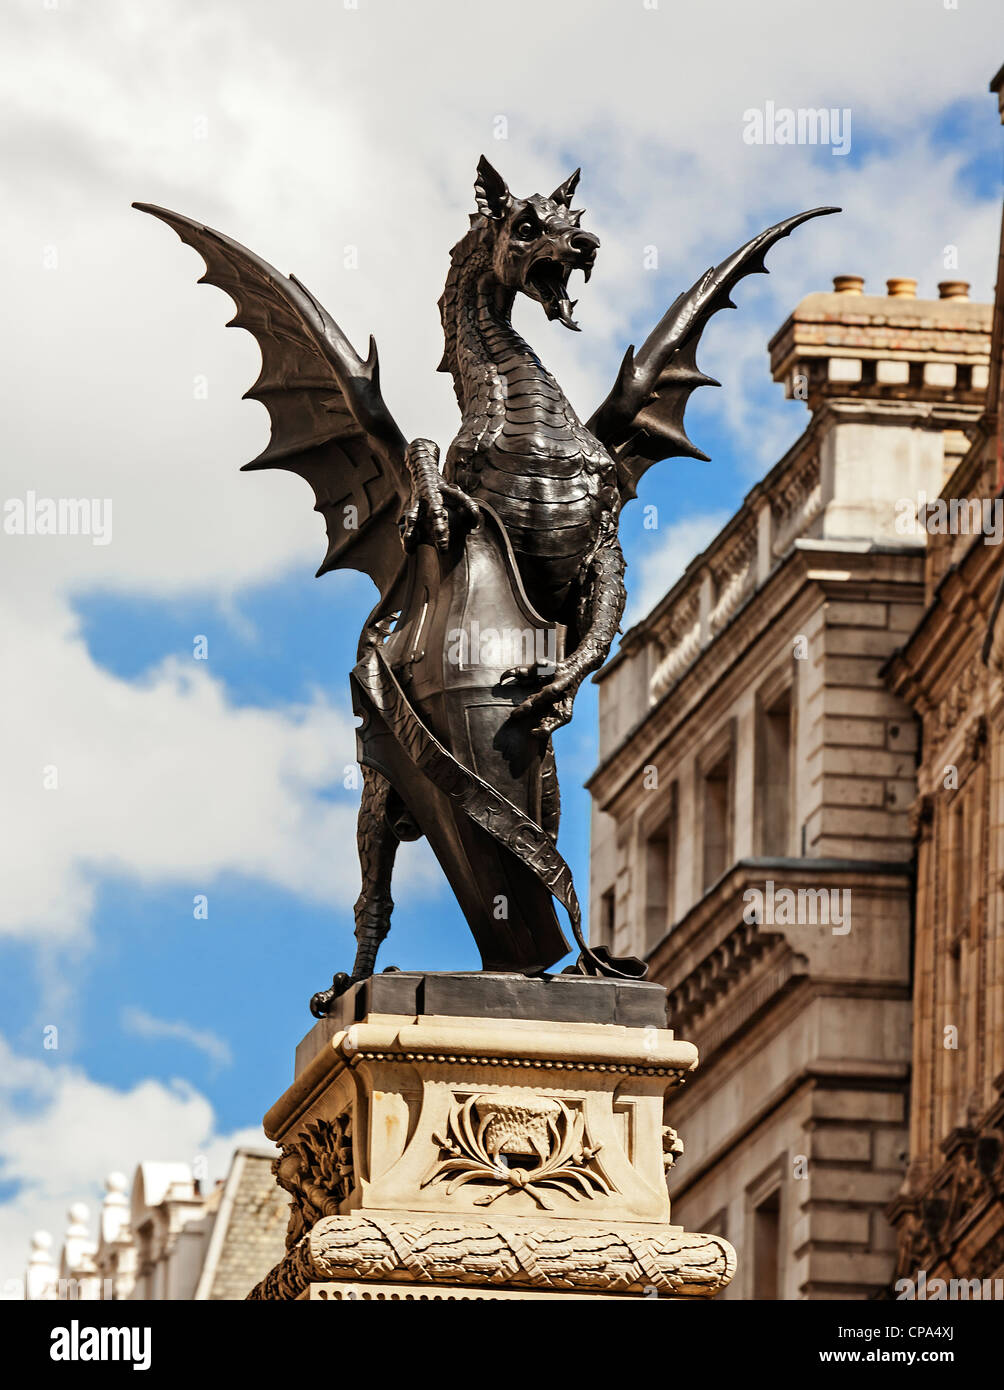 Dragon or Griffin atop the Temple Bar monument at the boundary between Westminster and the City of London, England. - Stock Image